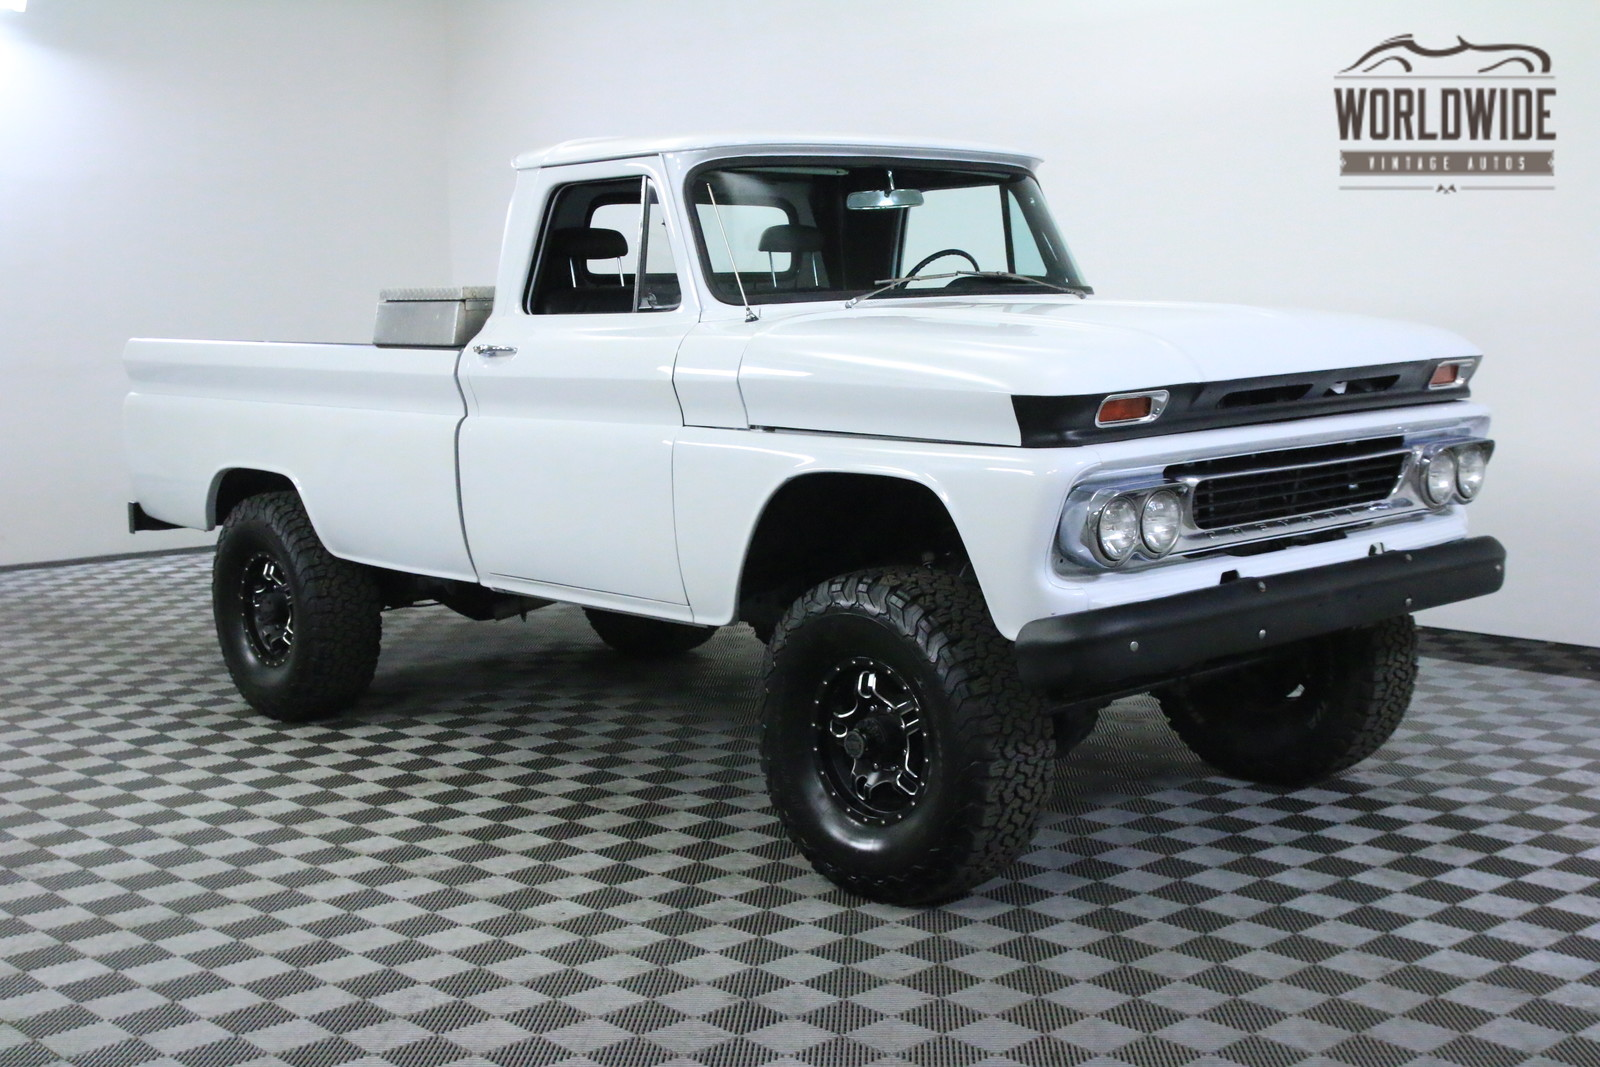 1966 White Restored  Fuel Injected V8! Dana Axles! - Used